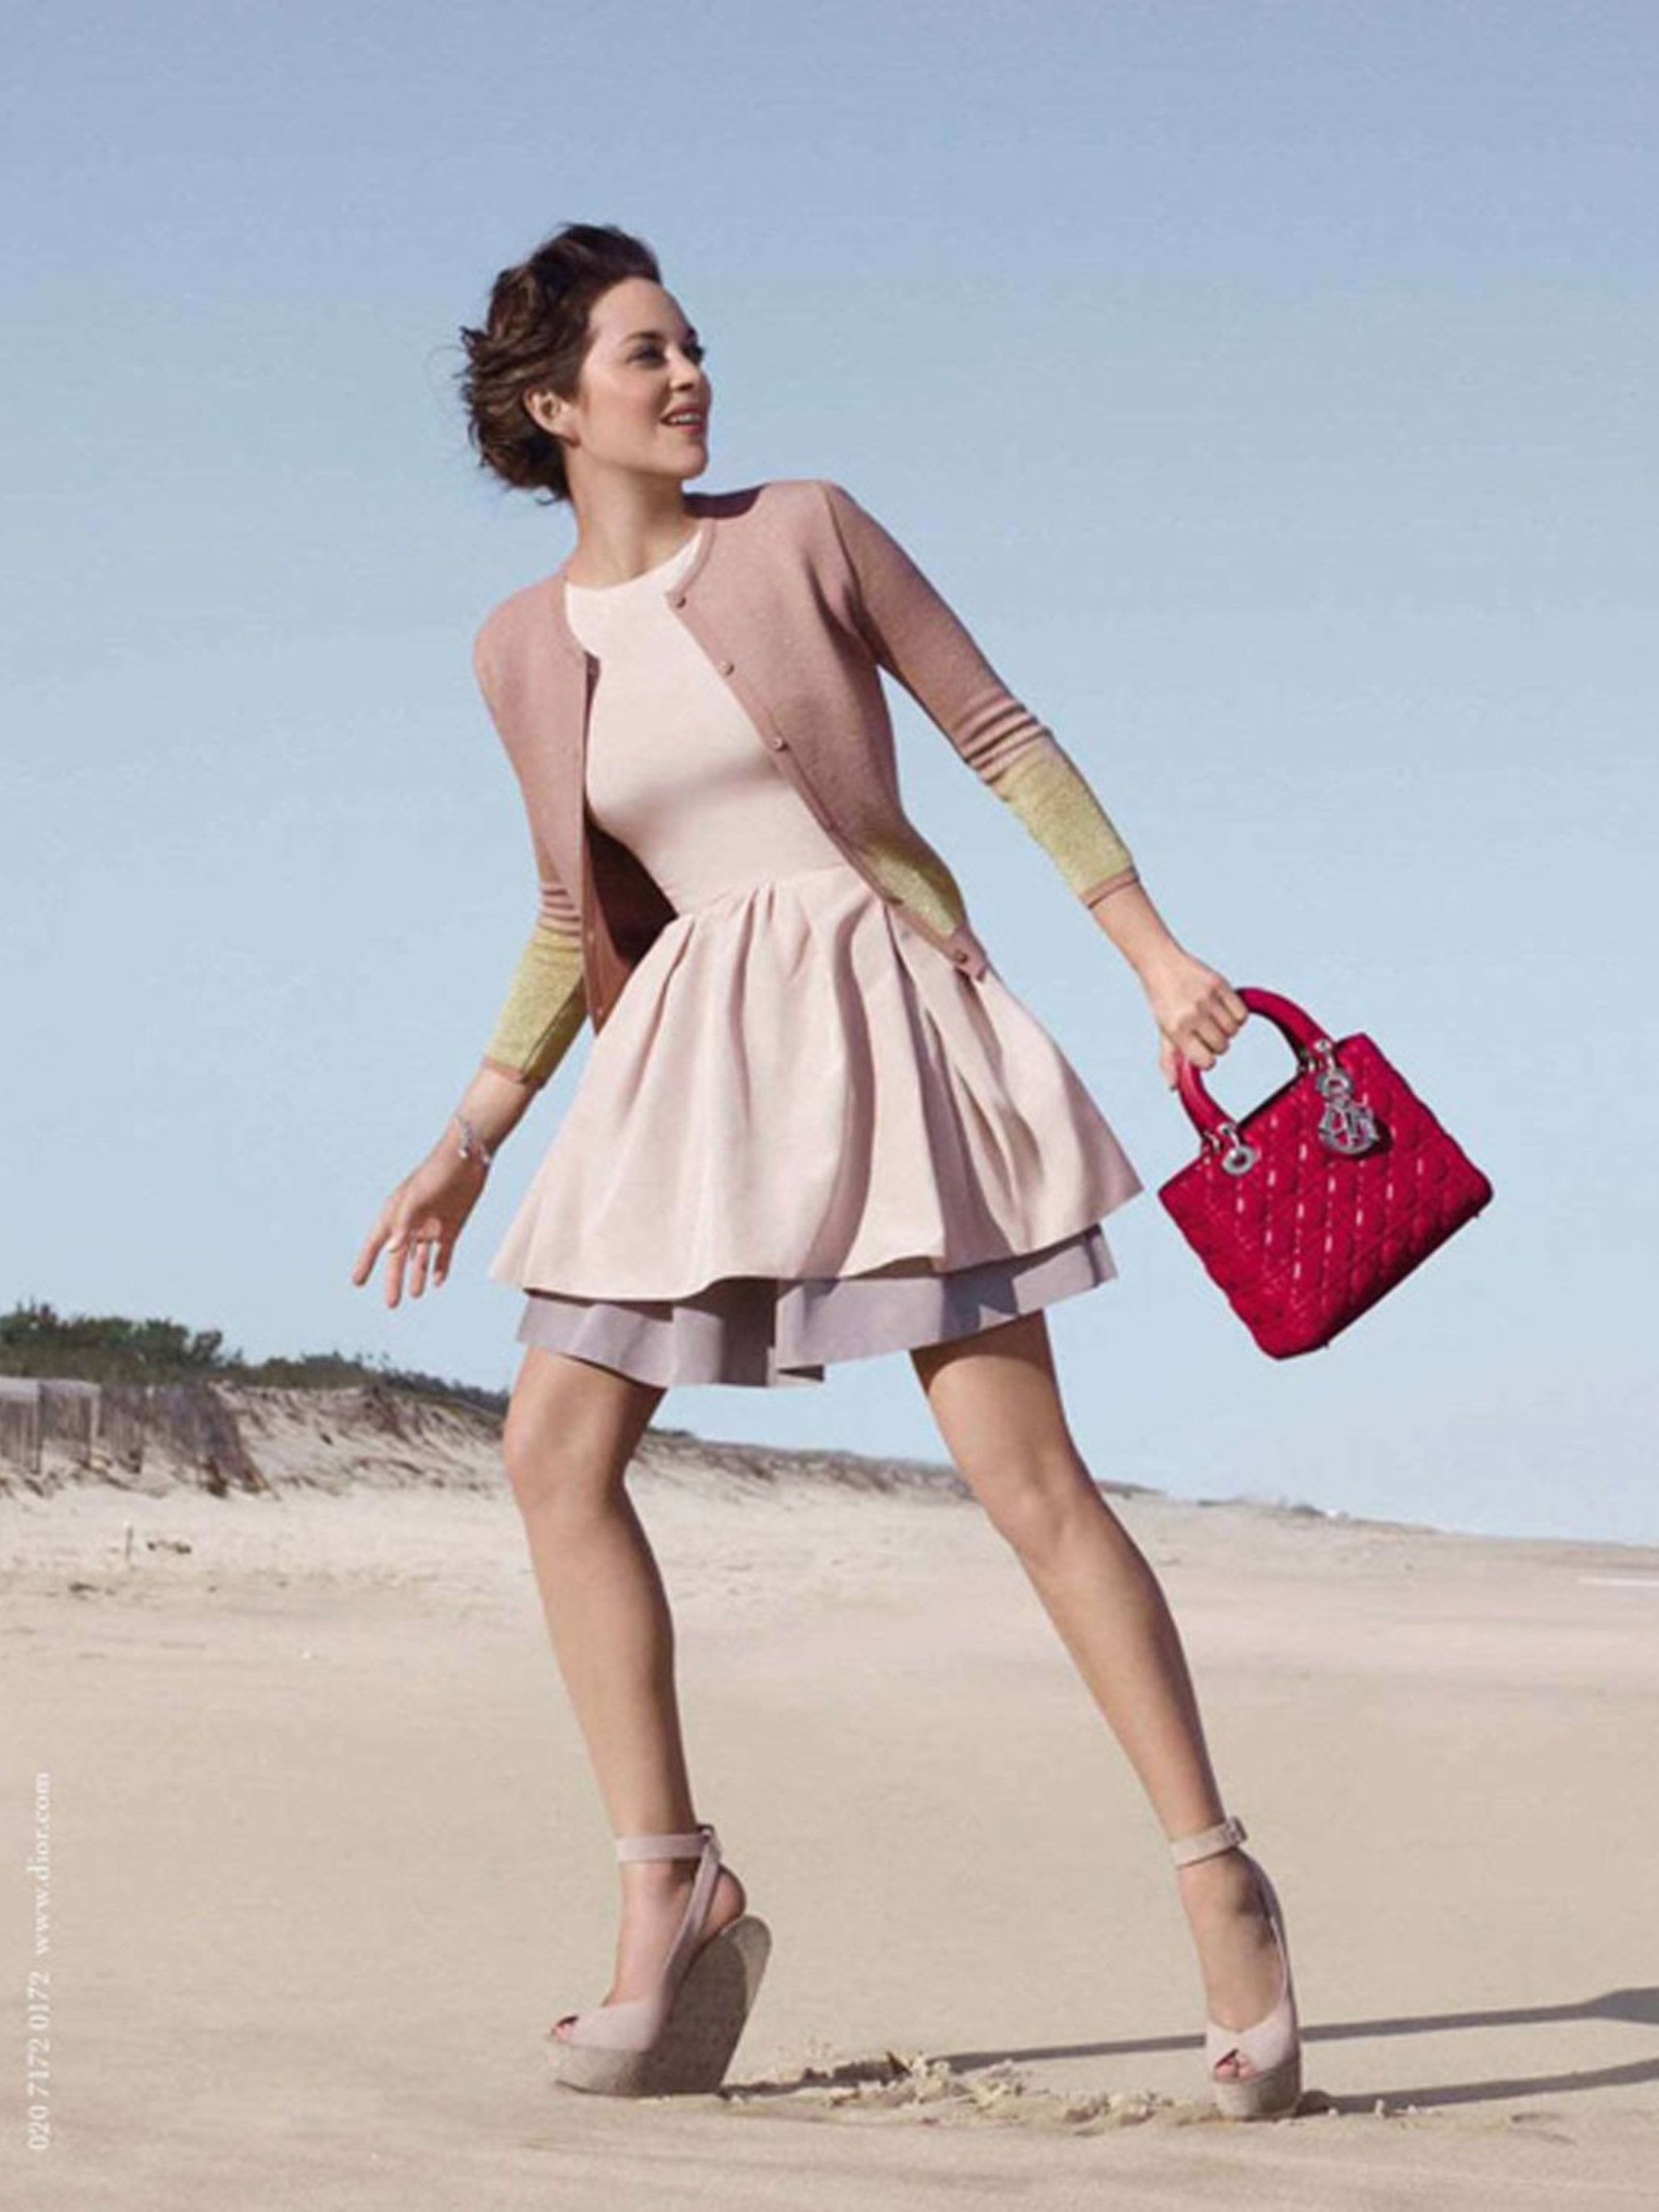 6defafae5abd Hollywood actress Marion Cotillard turns designer for Dior's 'Lady Dior'  handbag line